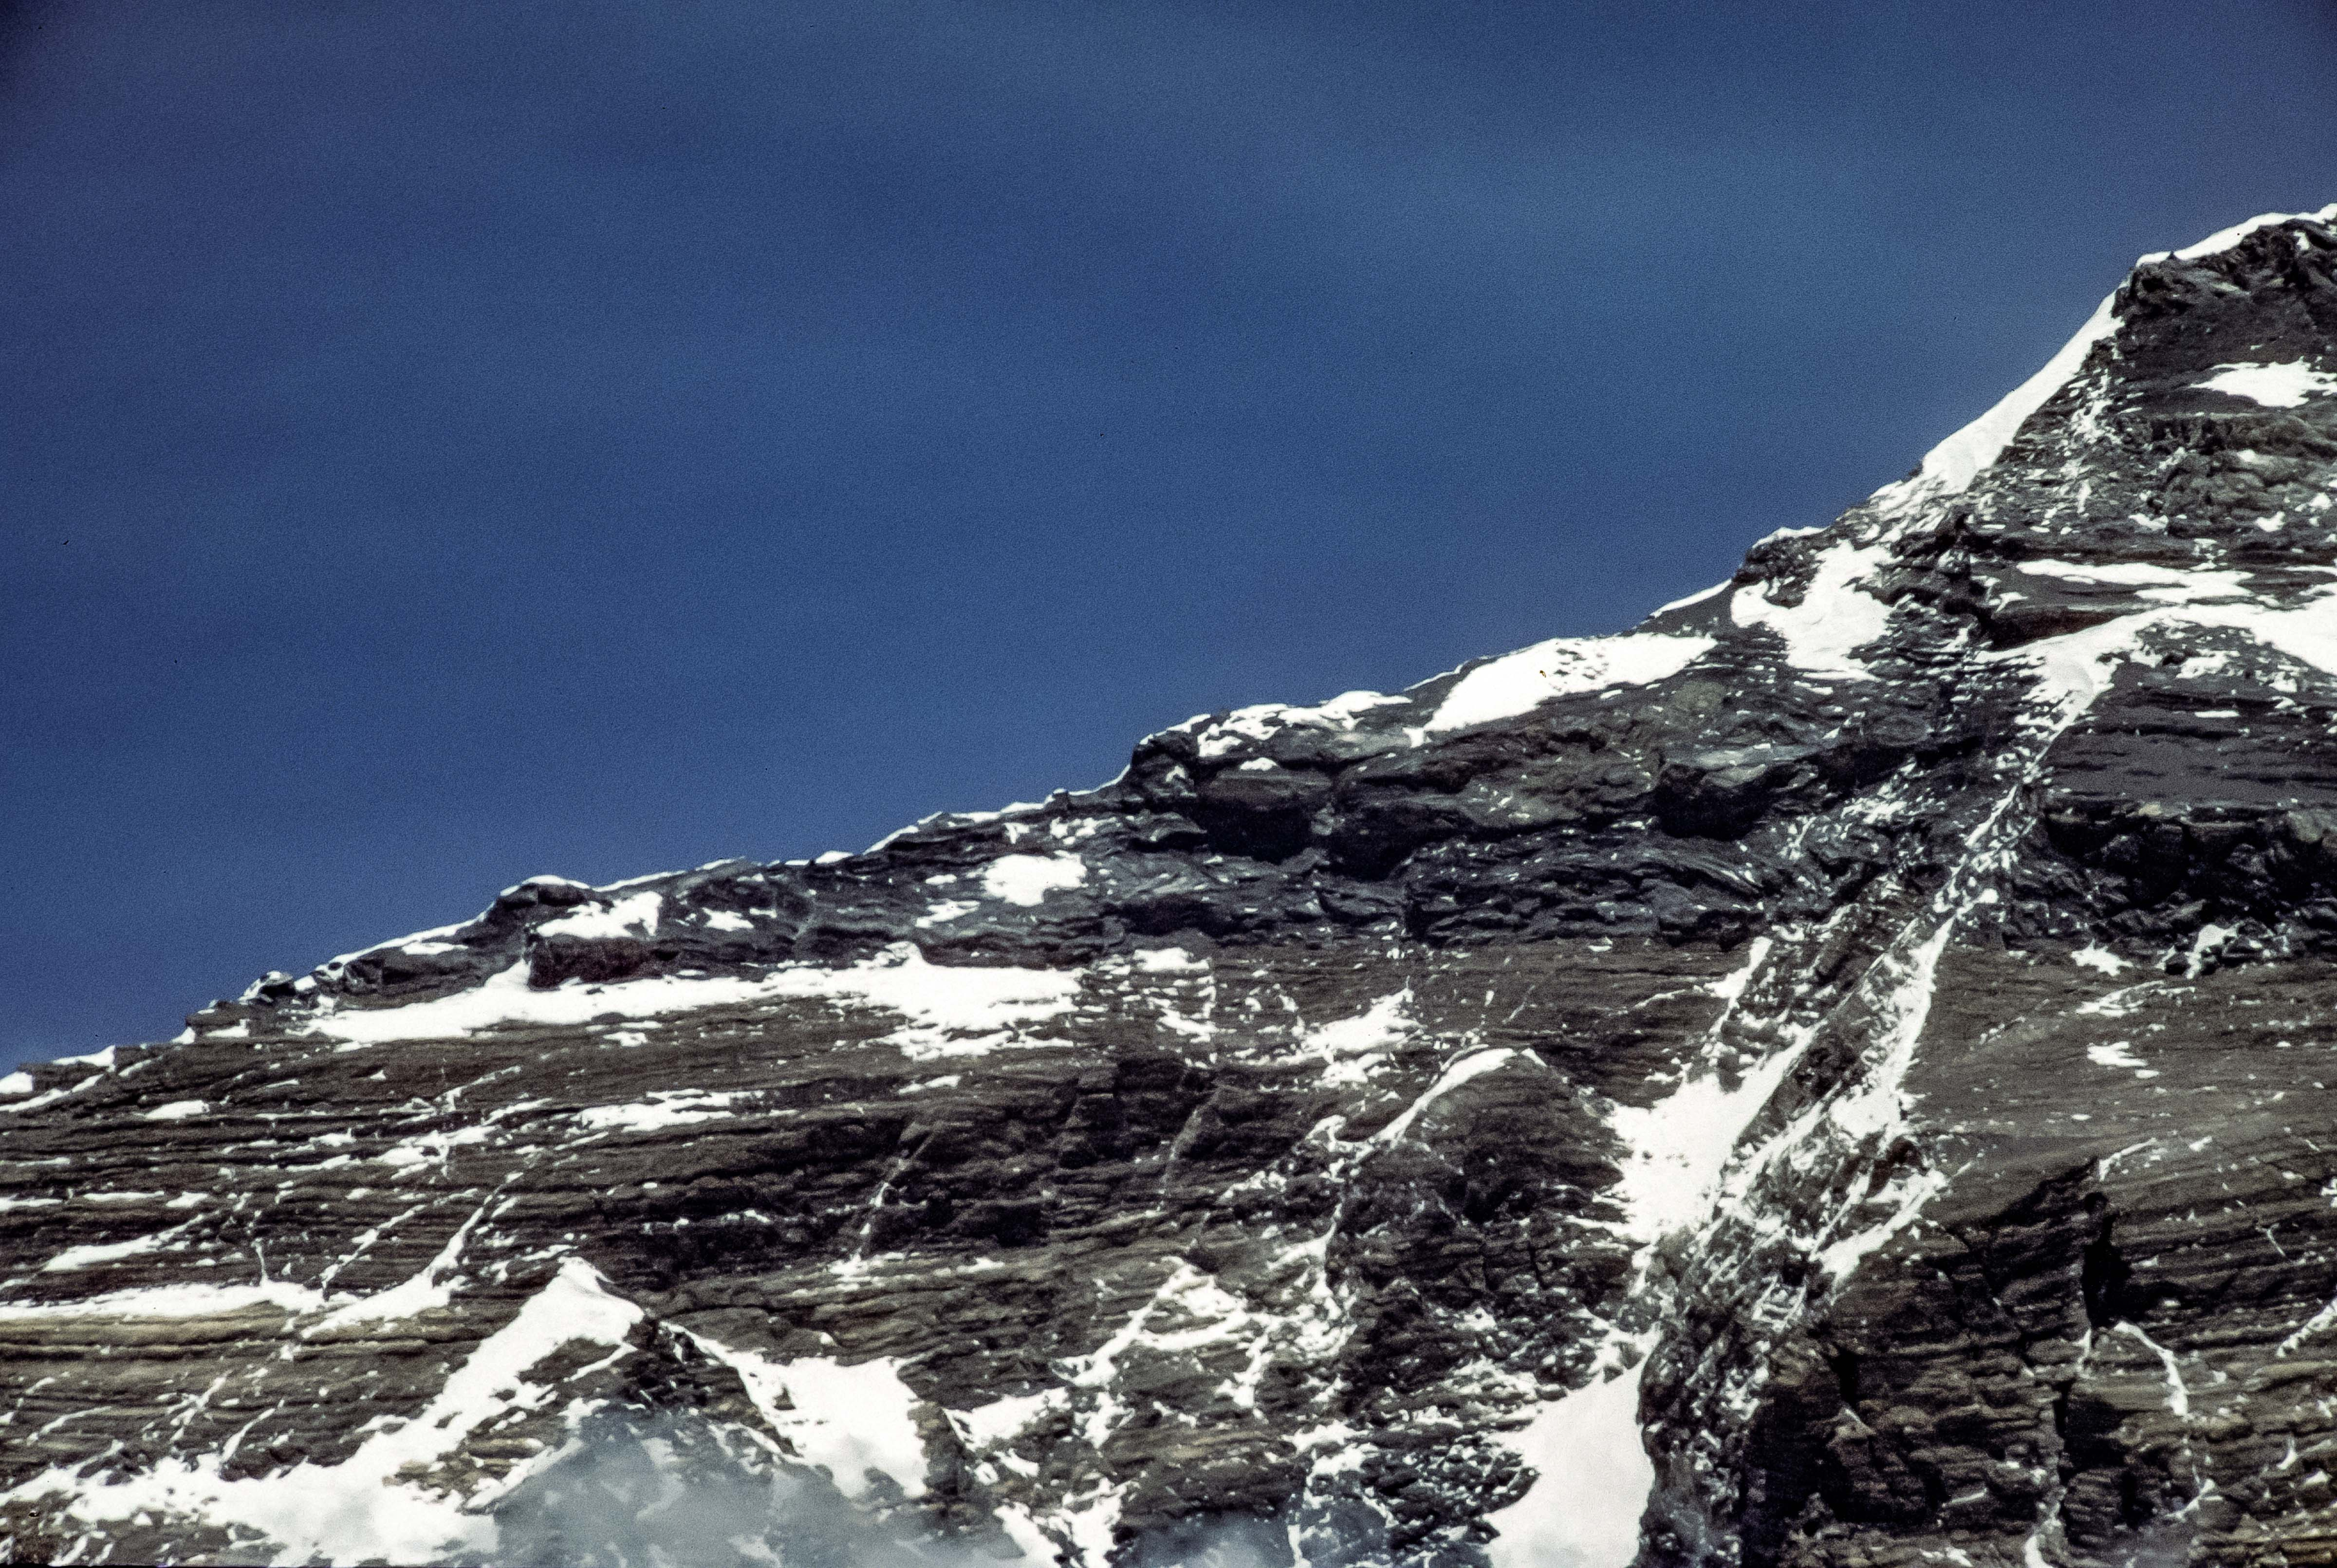 China, Xizang (Tibet) Prov, Everest North Ridge In Spring, 1995, 35mmSlide